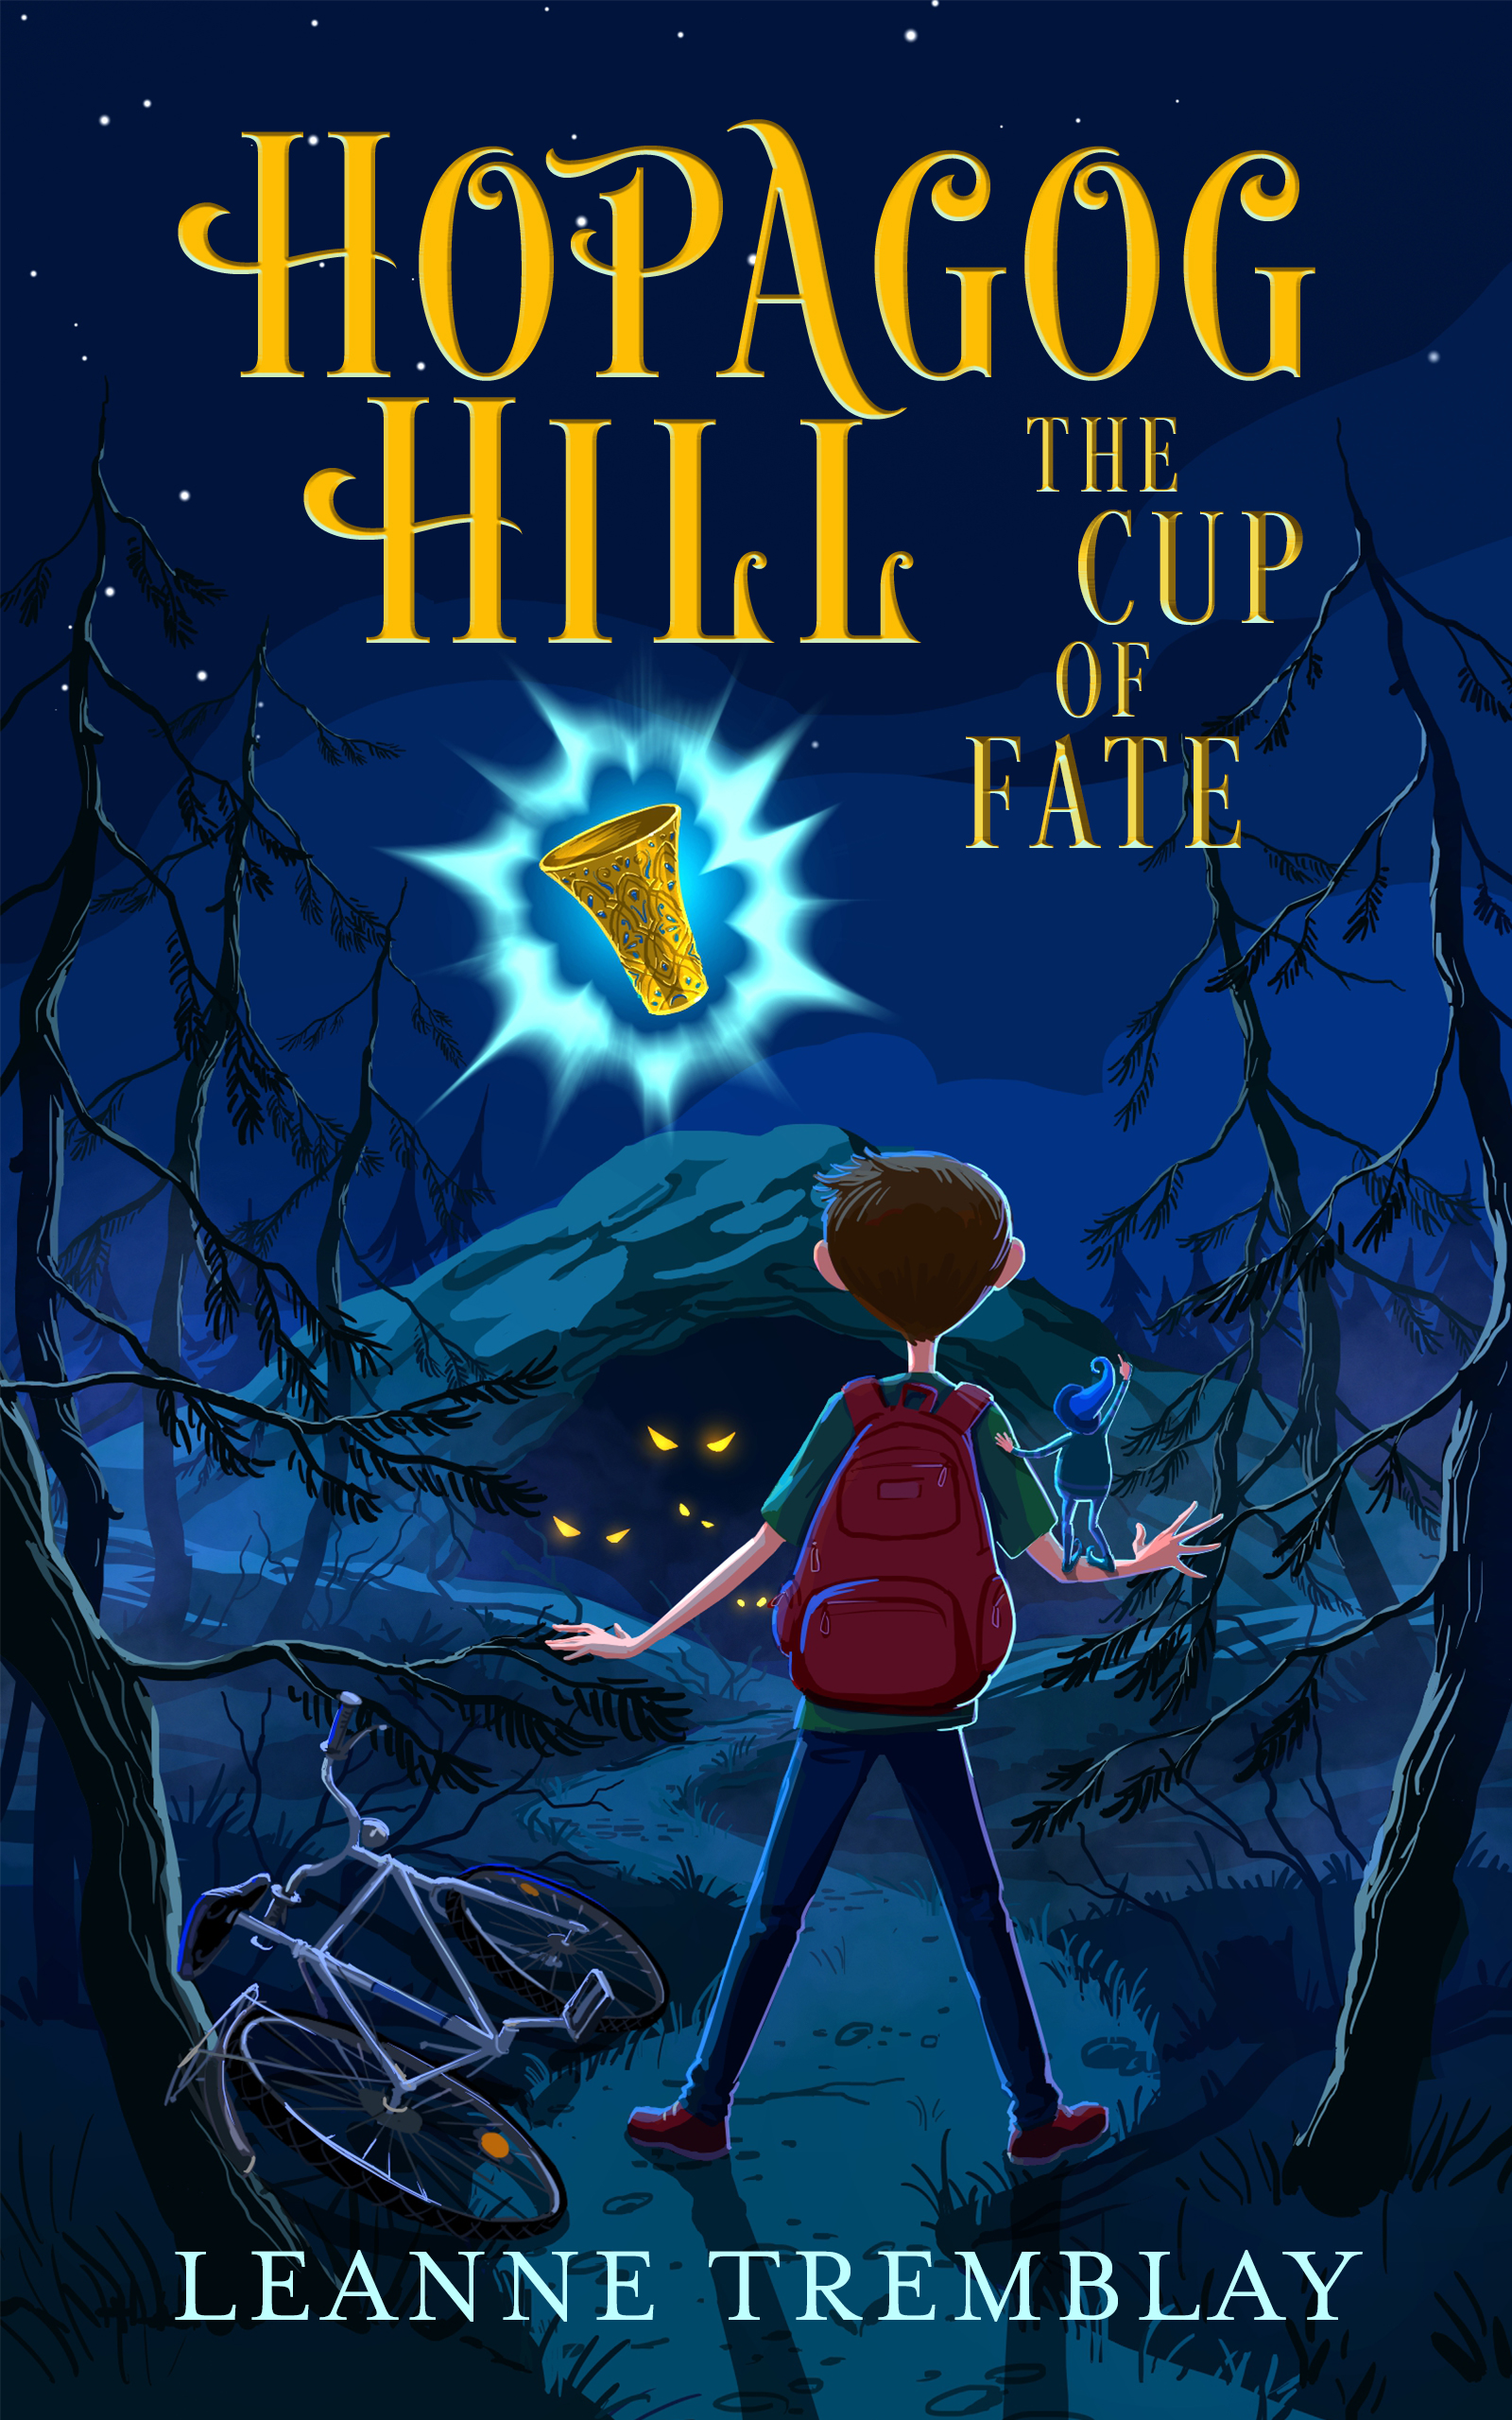 Hopagog Hill: The Cup of Fate